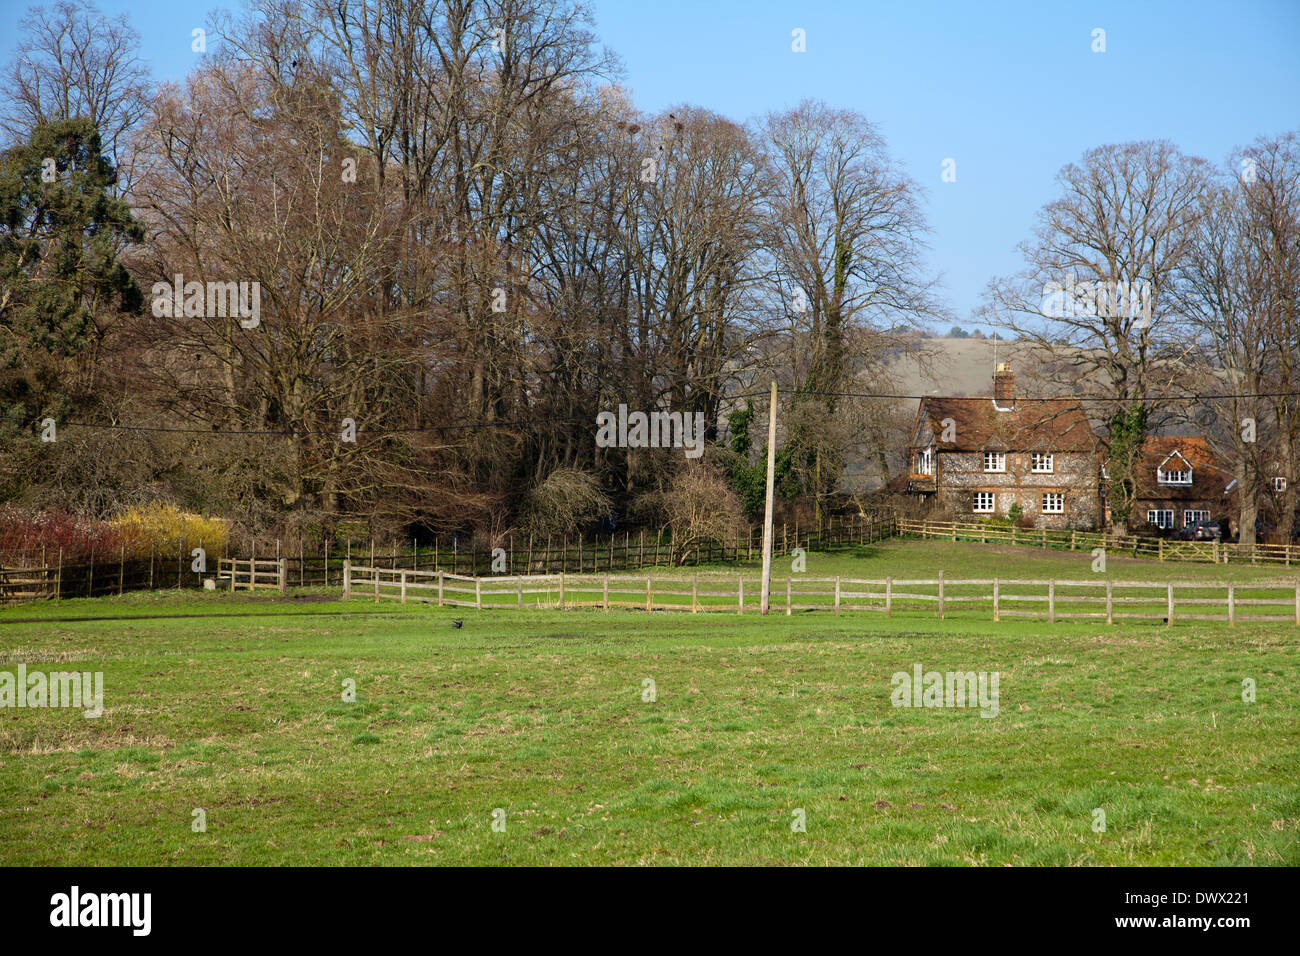 Hambleden Village Cottage and Land in Buckinghamshire in UK - Stock Image